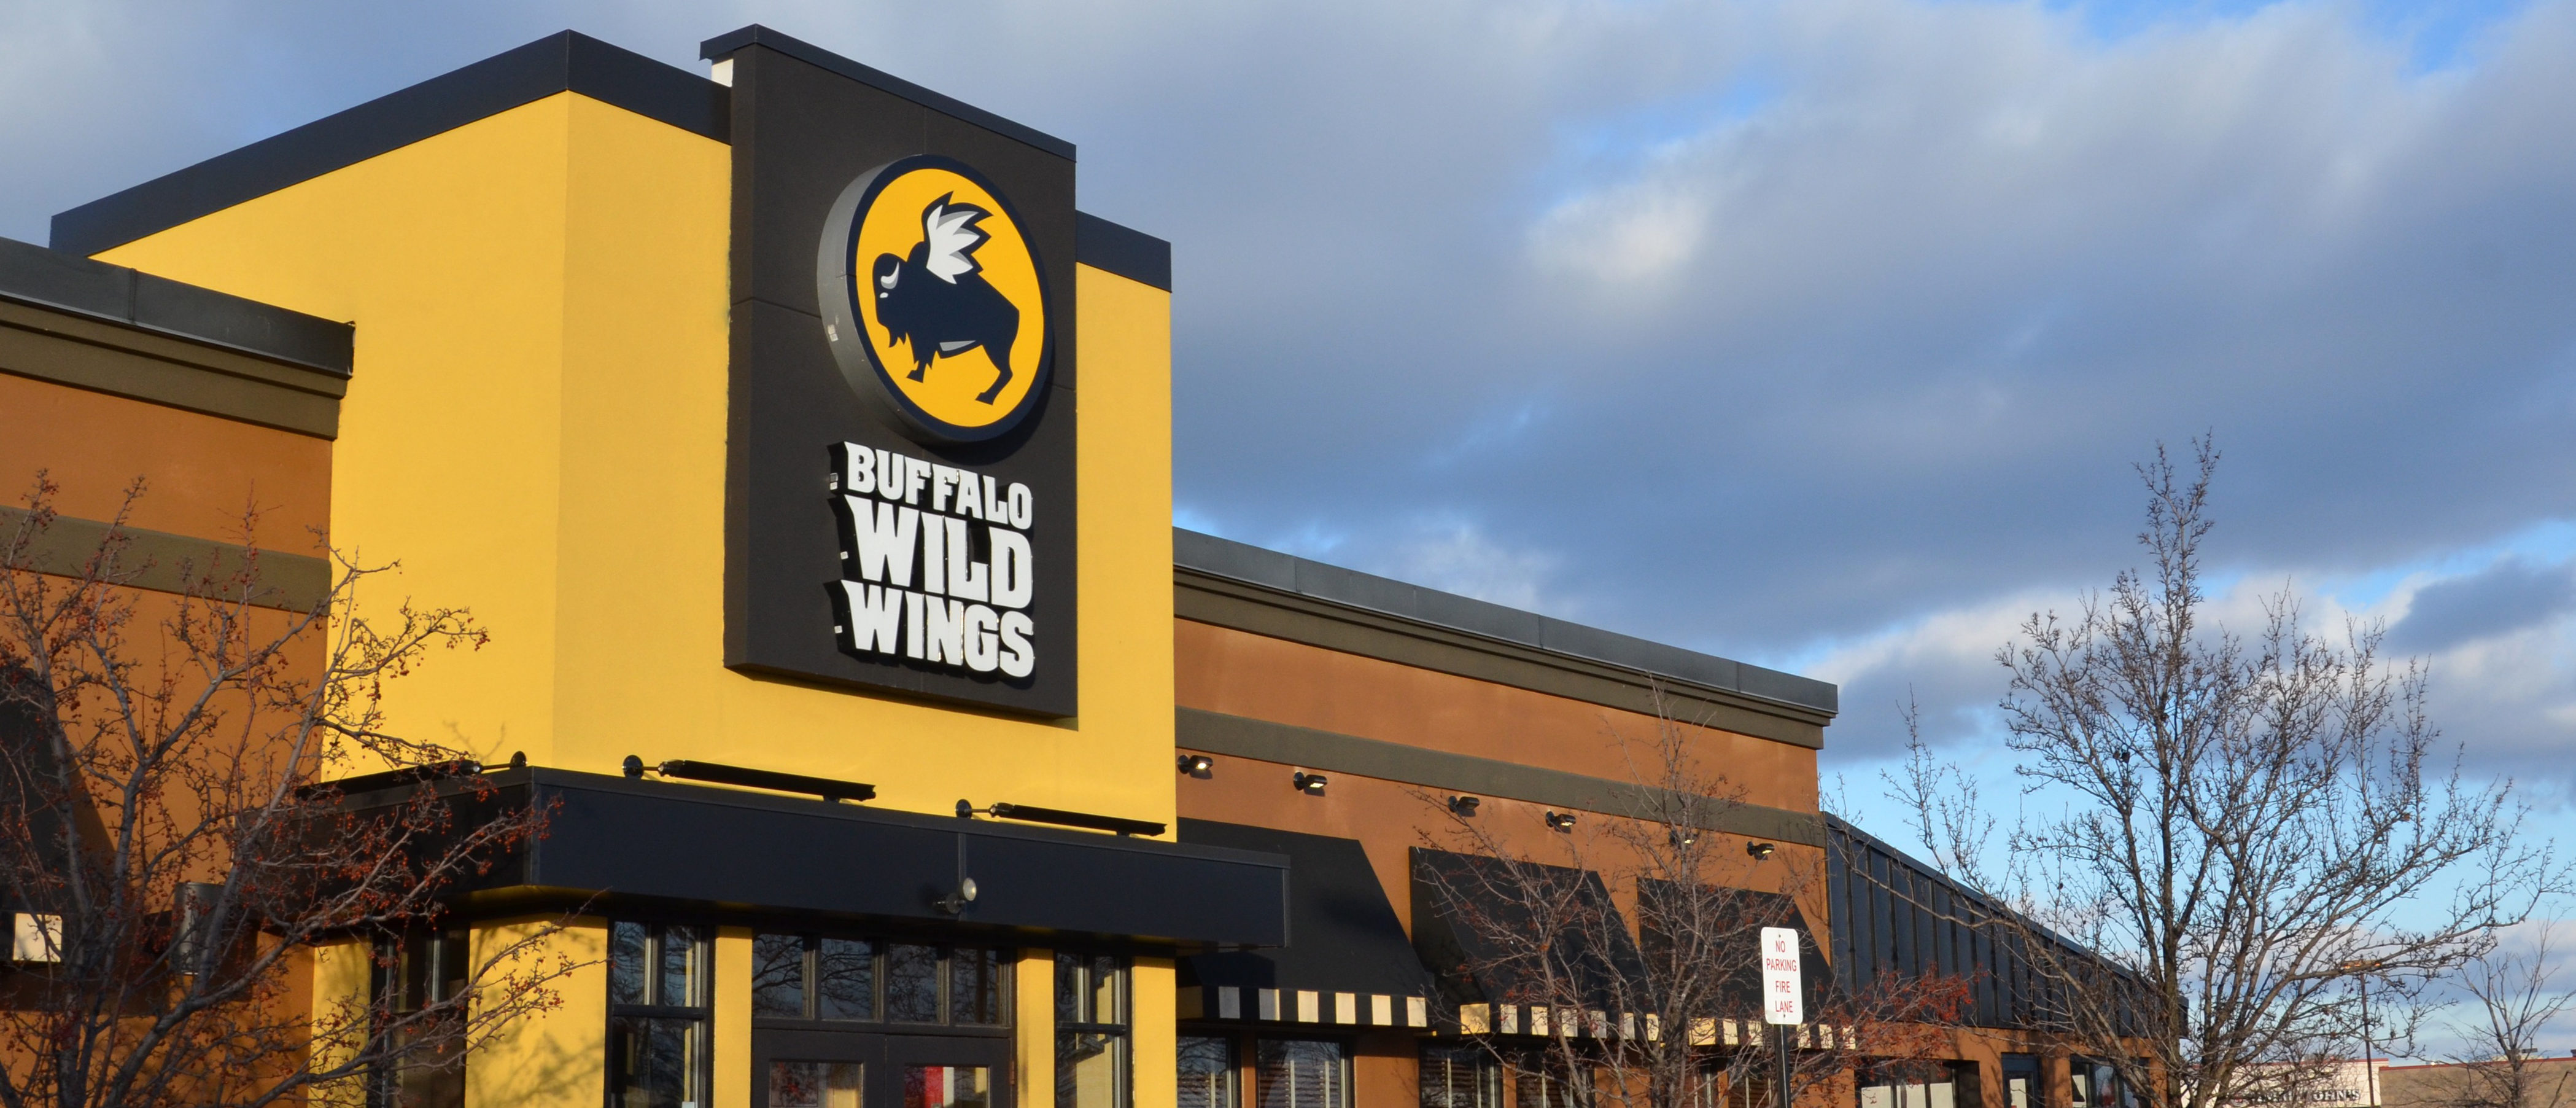 Racist Hacks Buffalo Wild Wings Twitter Account — Somehow Trump Gets Blamed | The Daily Caller